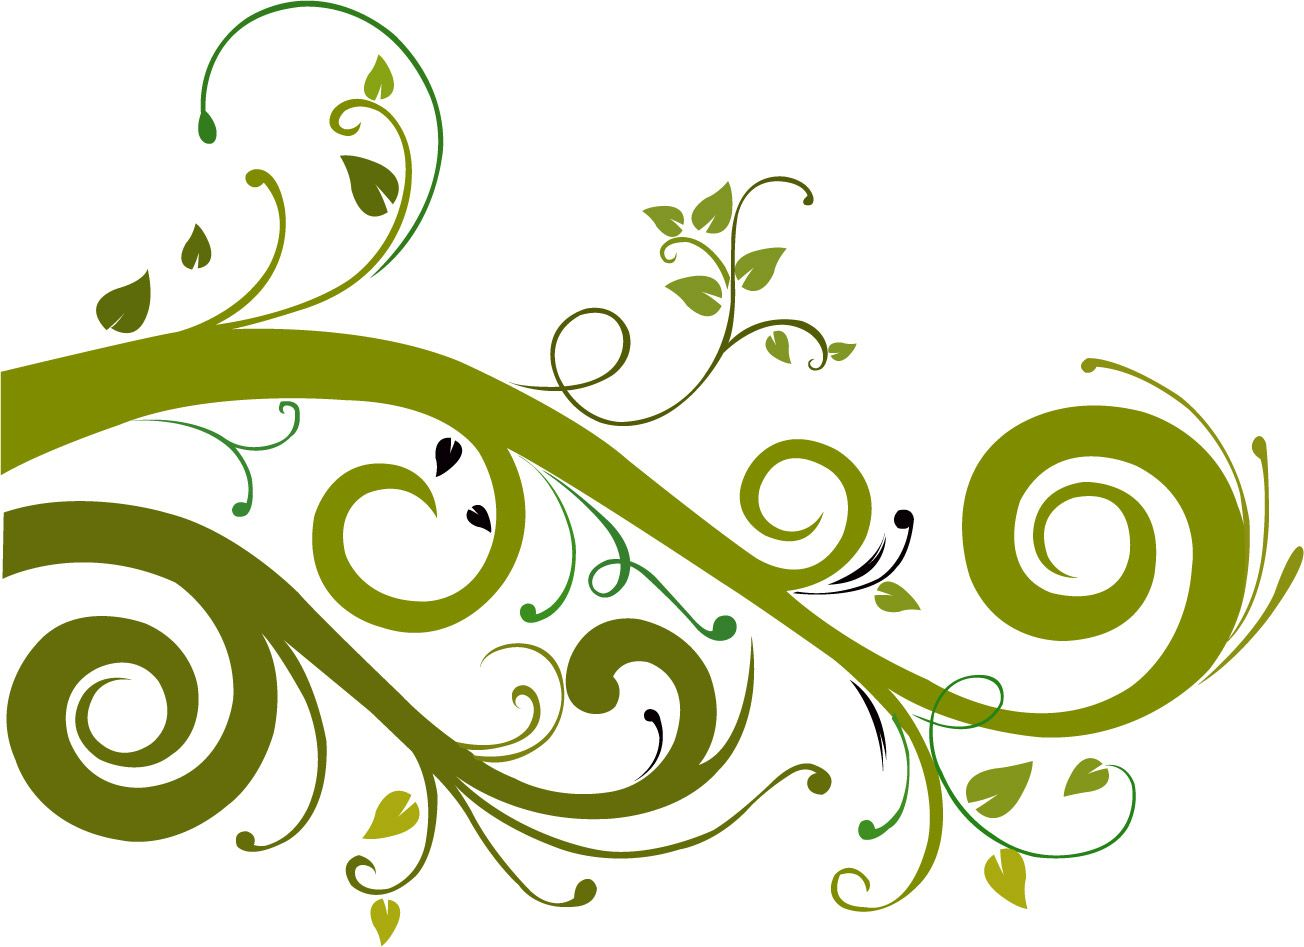 Green floral design vector graphic free vector graphics all free - Flower Vector Graphic 7554 Hd Wallpapers In Vector N Designs